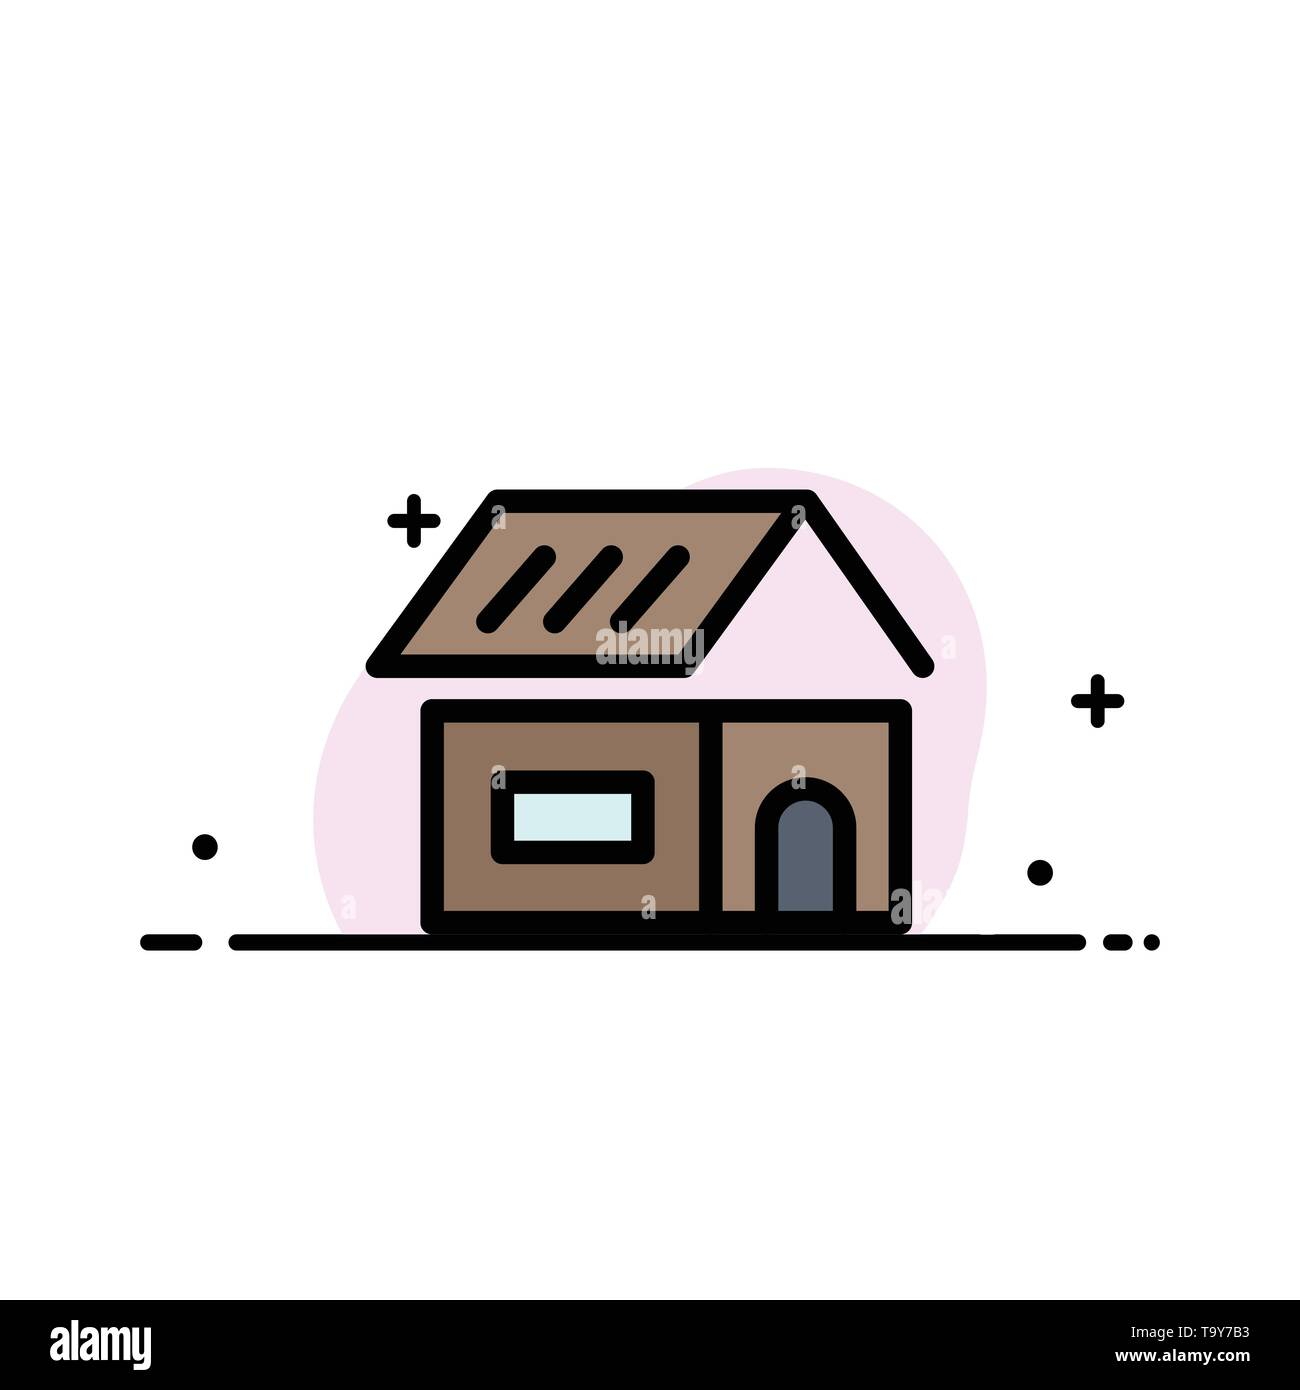 Building, Build, Construction, Home Business Flat Line ... on architecture icons, home construction artwork, home construction windows, home builder icon, home construction theme, home construction software, home construction photography, home construction clip art, home construction illustration, contractors icons, home logo construction, home construction tips, home construction united states, home construction data, remodeling icons, home construction cards, electrical icons, home construction quotes, home under construction, home construction wallpaper,